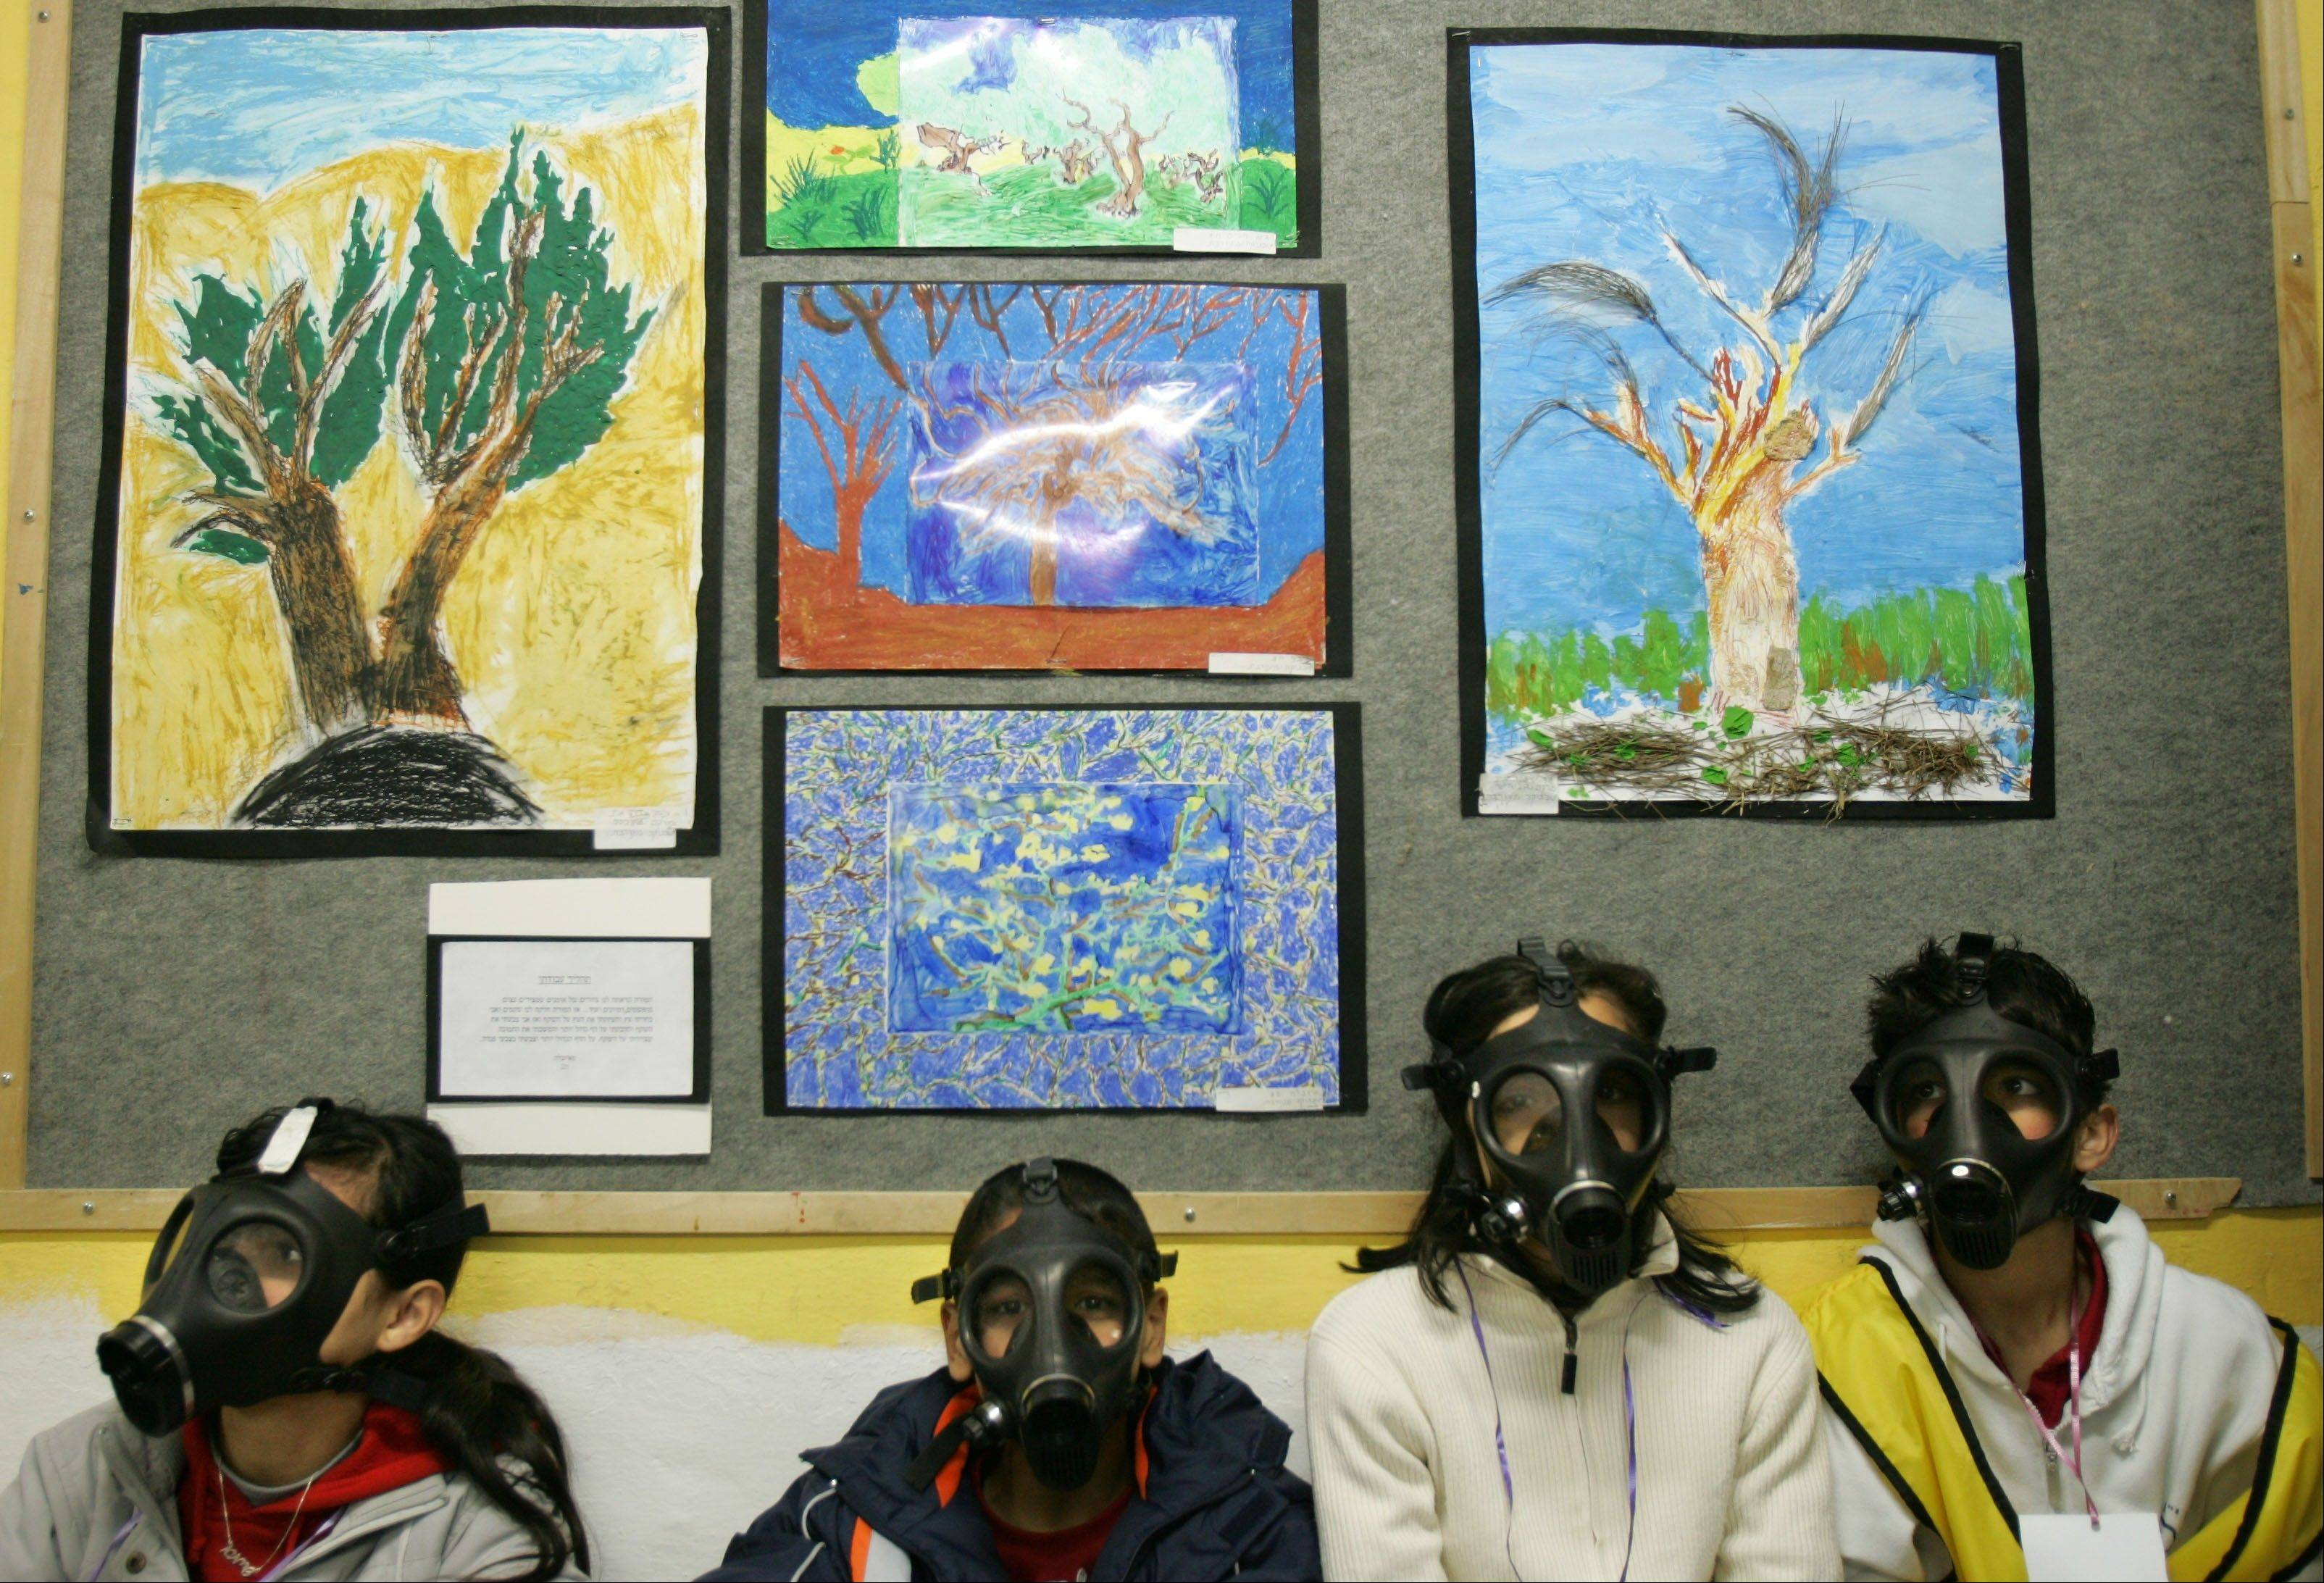 Associated Press/March 15, 2007 Israeli school children wear gas masks during a drill organized by the Israeli Home Front Command, simulating a chemical missile attack in a shelter at a school in the central Israeli city of Lod. Israel�s outgoing civil defense chief said Wednesday, that an attack on Iran�s nuclear sites would likely trigger a drawn-out war that would last months and kill hundreds of Israelis.